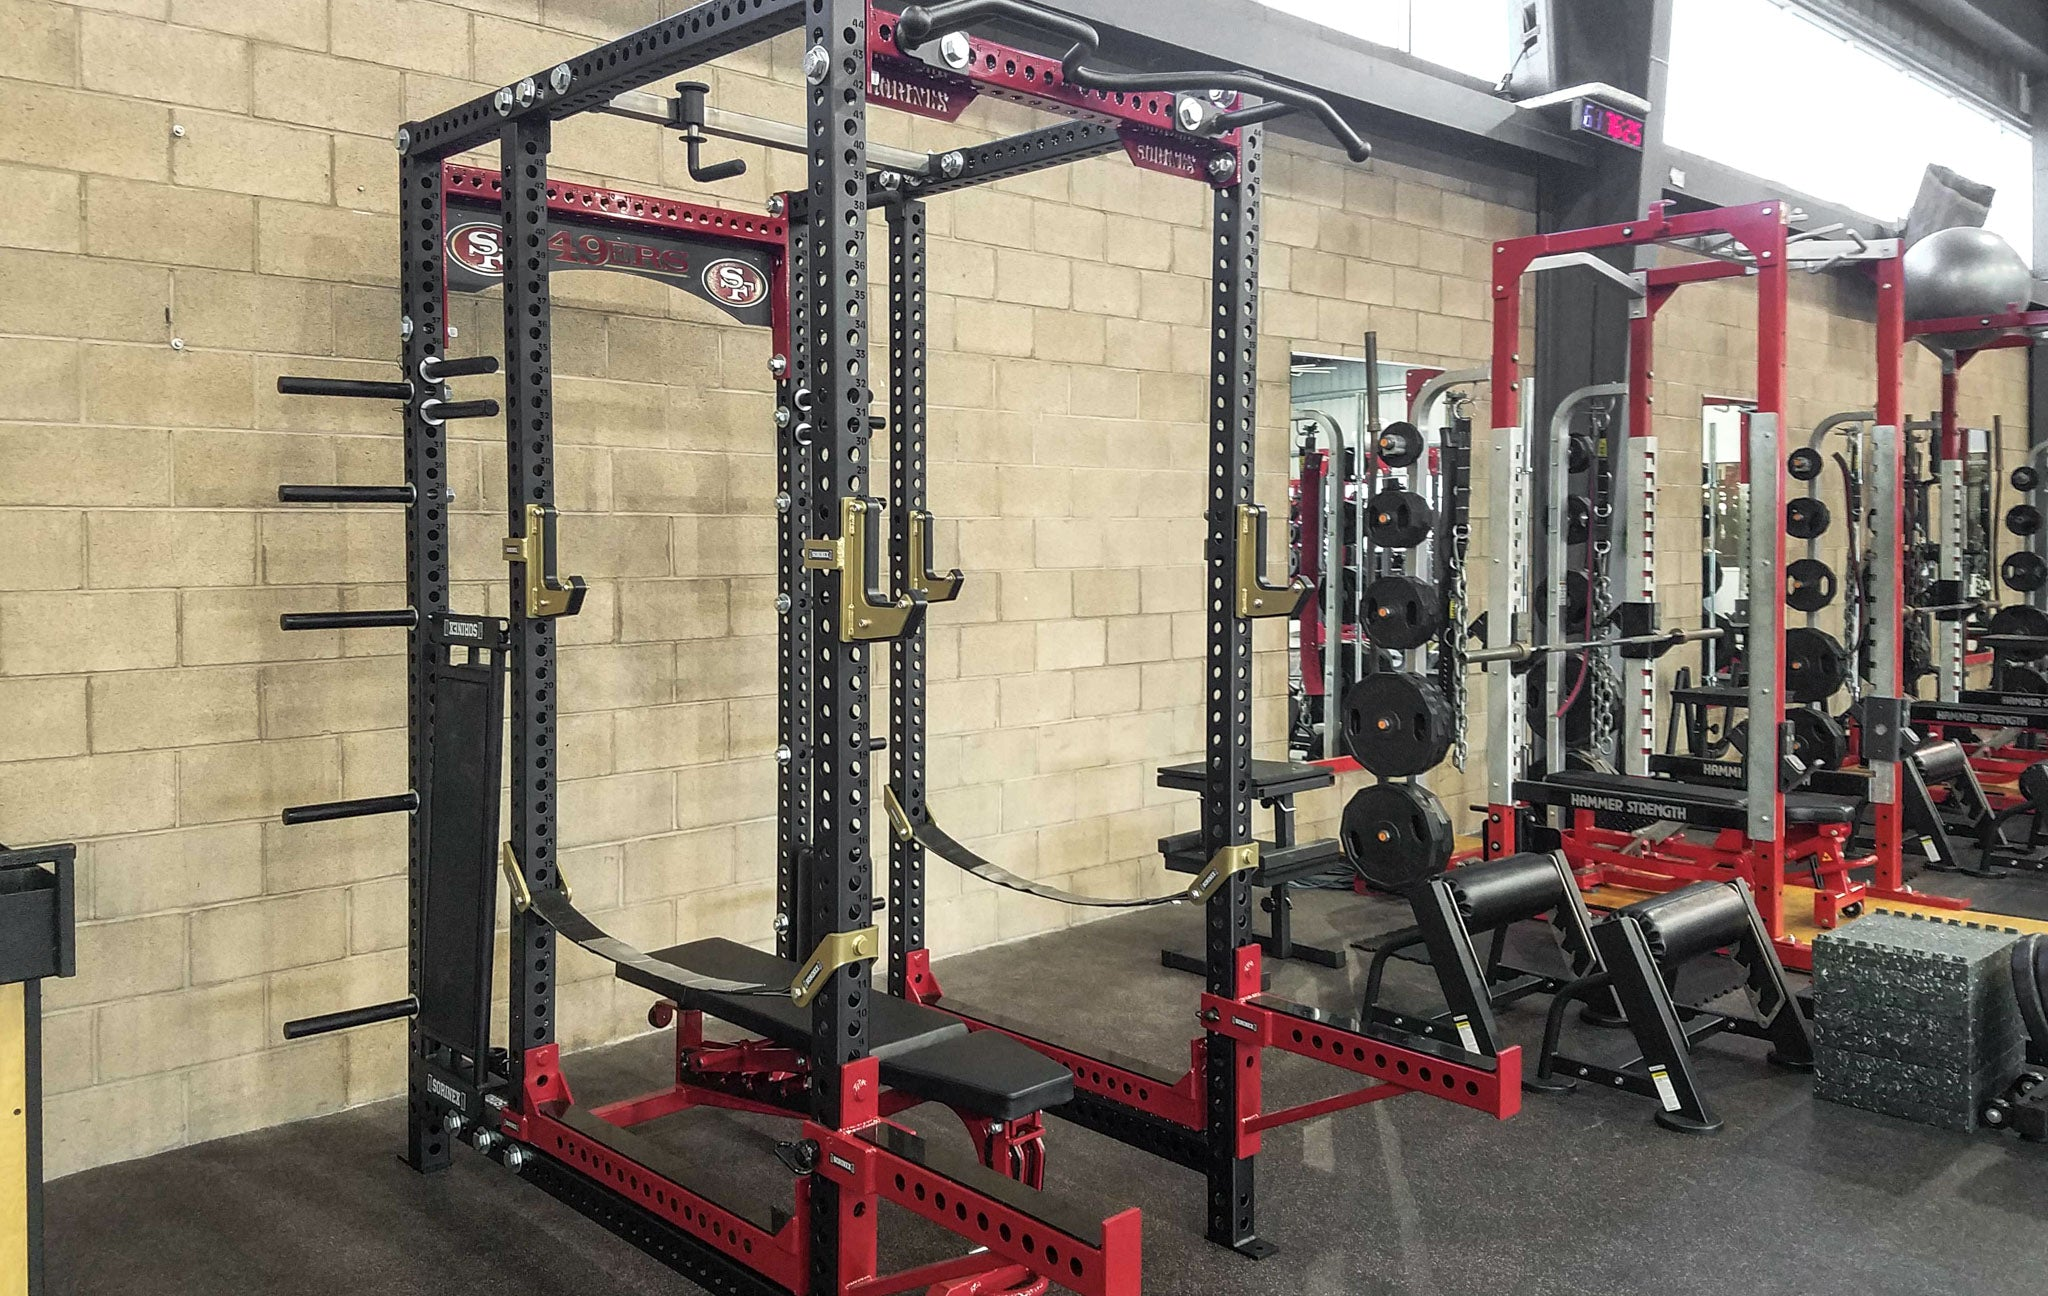 San Francisco 49ers weight room